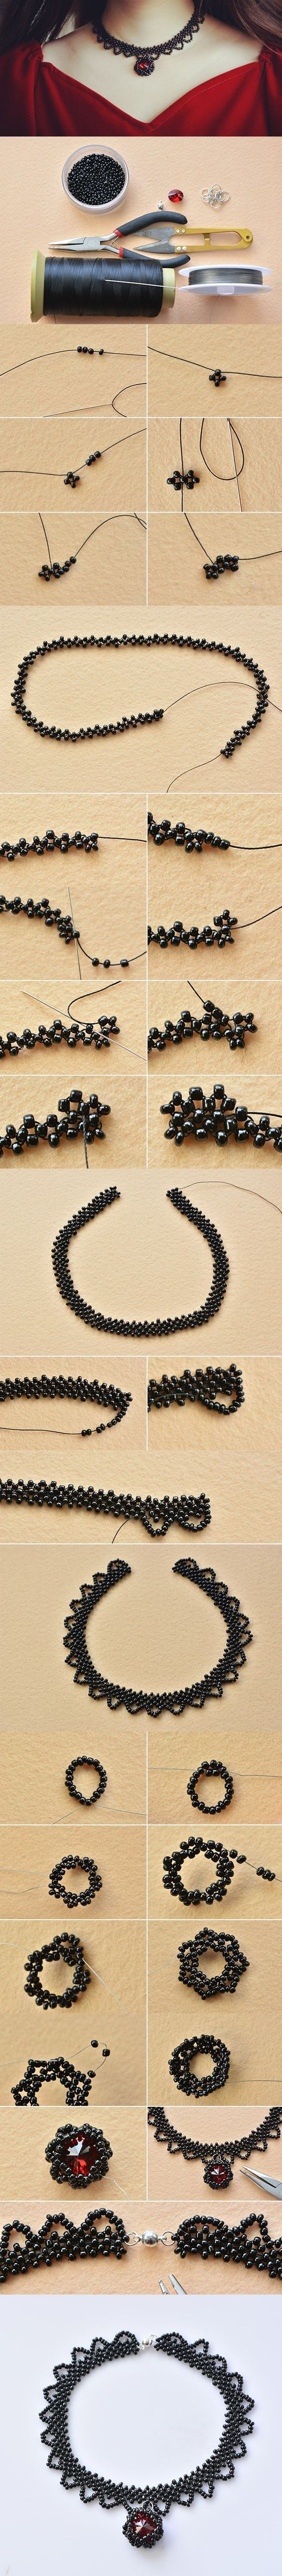 Get ready to show your handiwork. Here is a tutorial for a handmade vintage choker necklace with black seed beads. After you string up and down the black seed beads as shown, complete the choker wi…